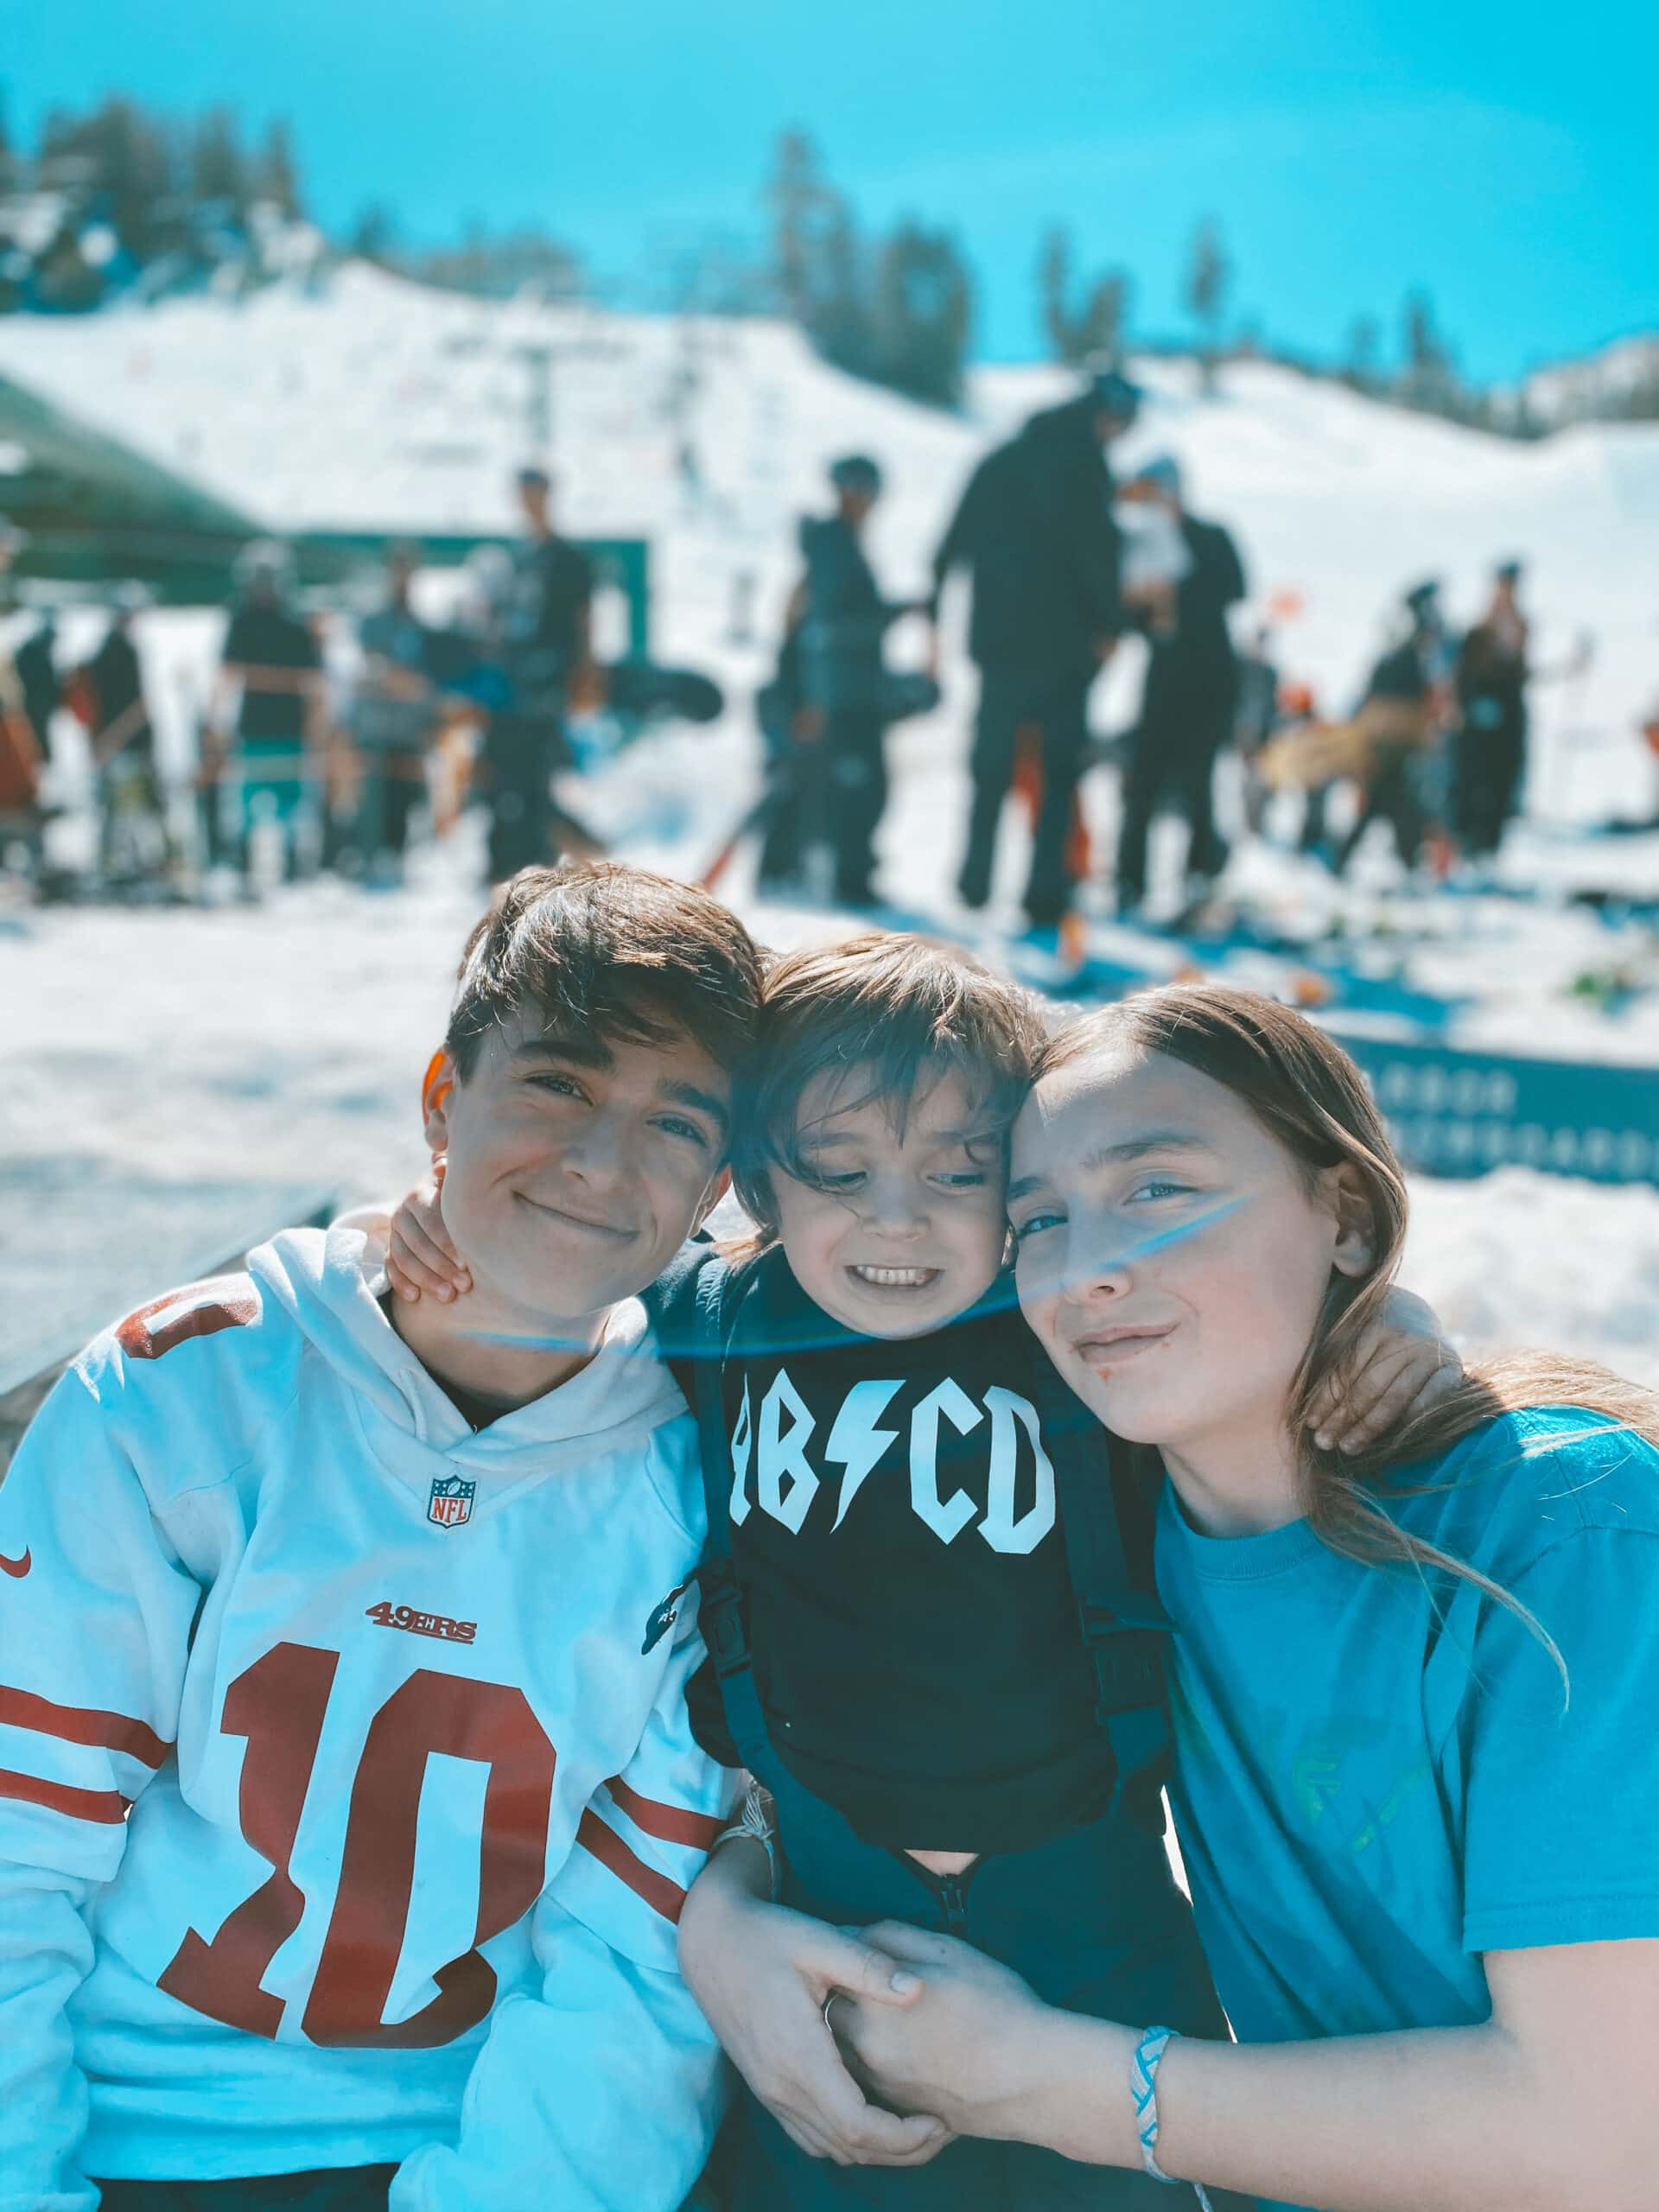 kids hugging at ski resort